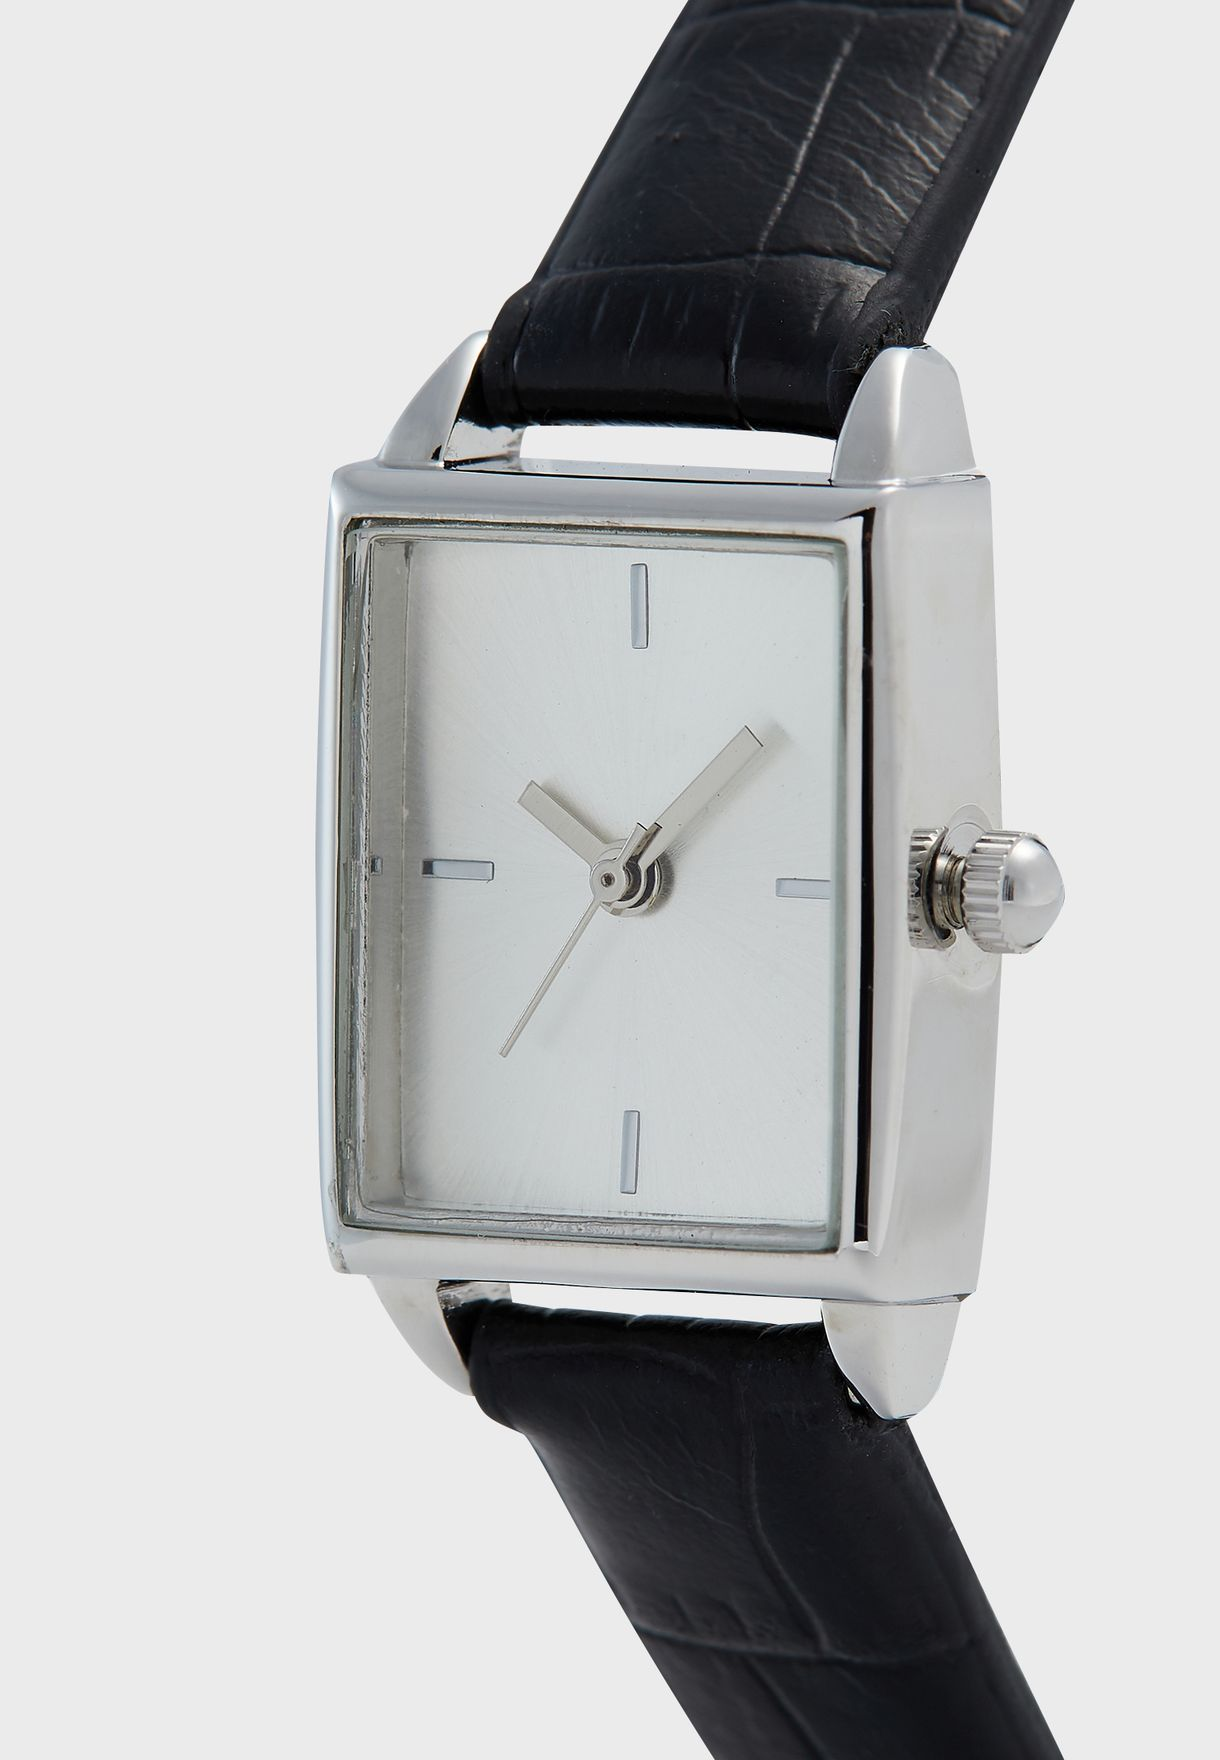 Watch with Croc Strap